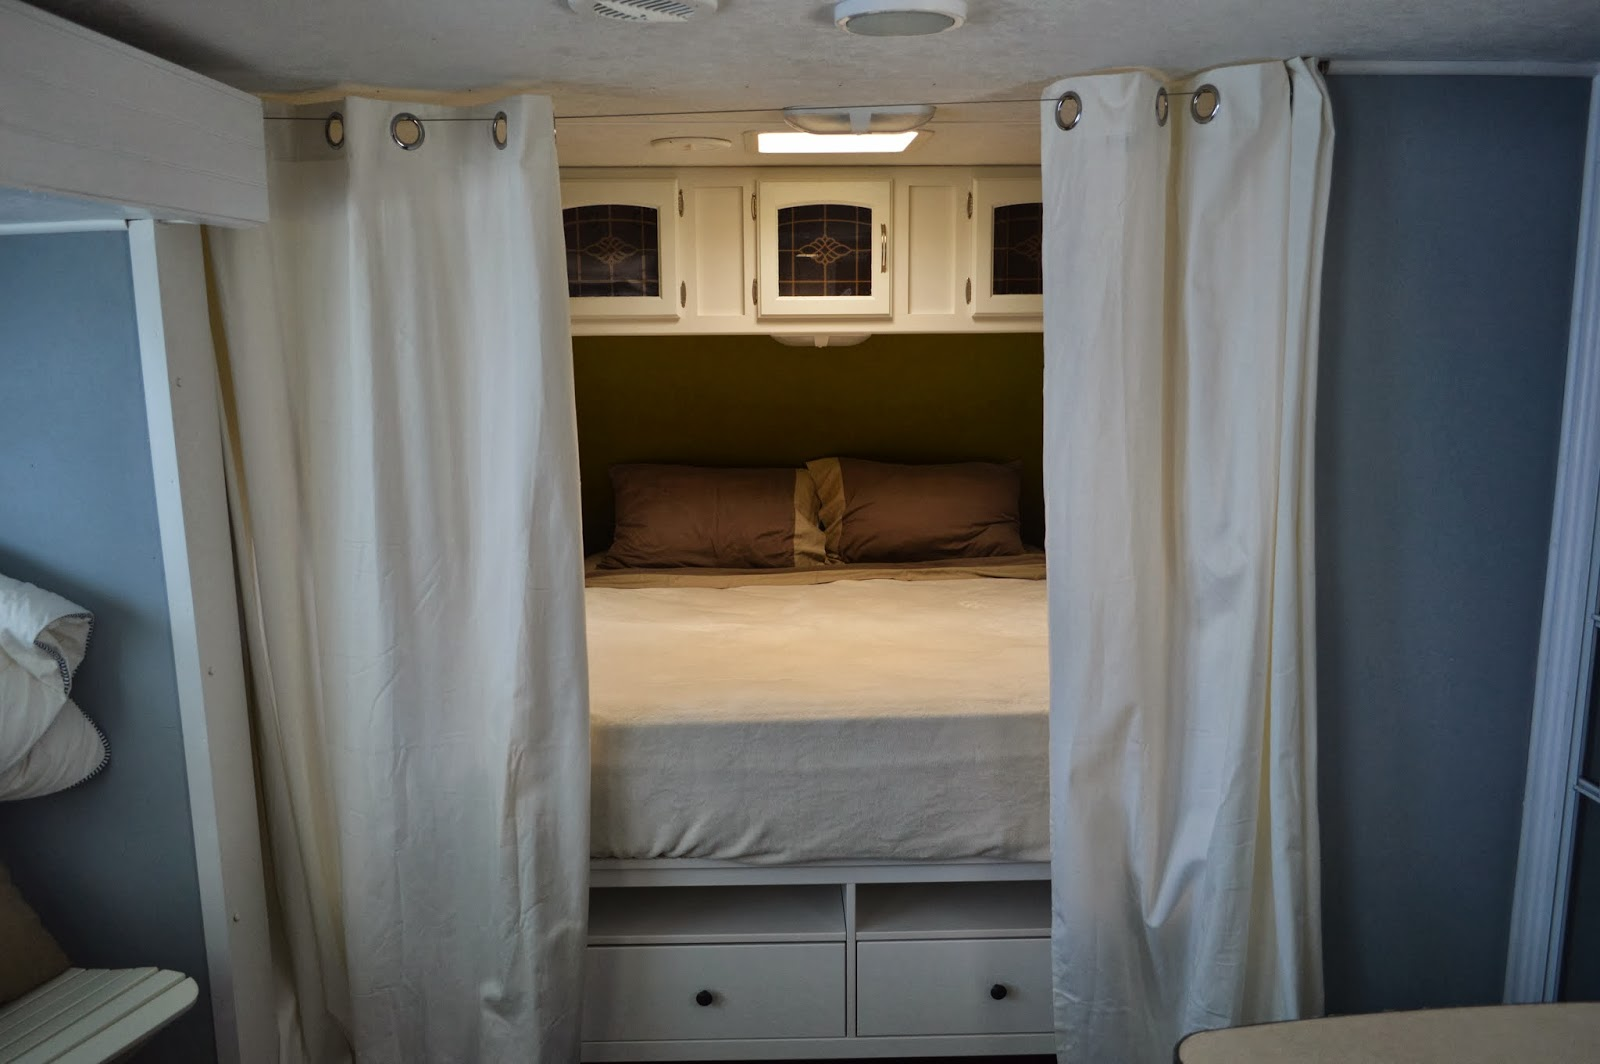 Traveling triads travel trailer remodel reveal for 2 bathroom travel trailer